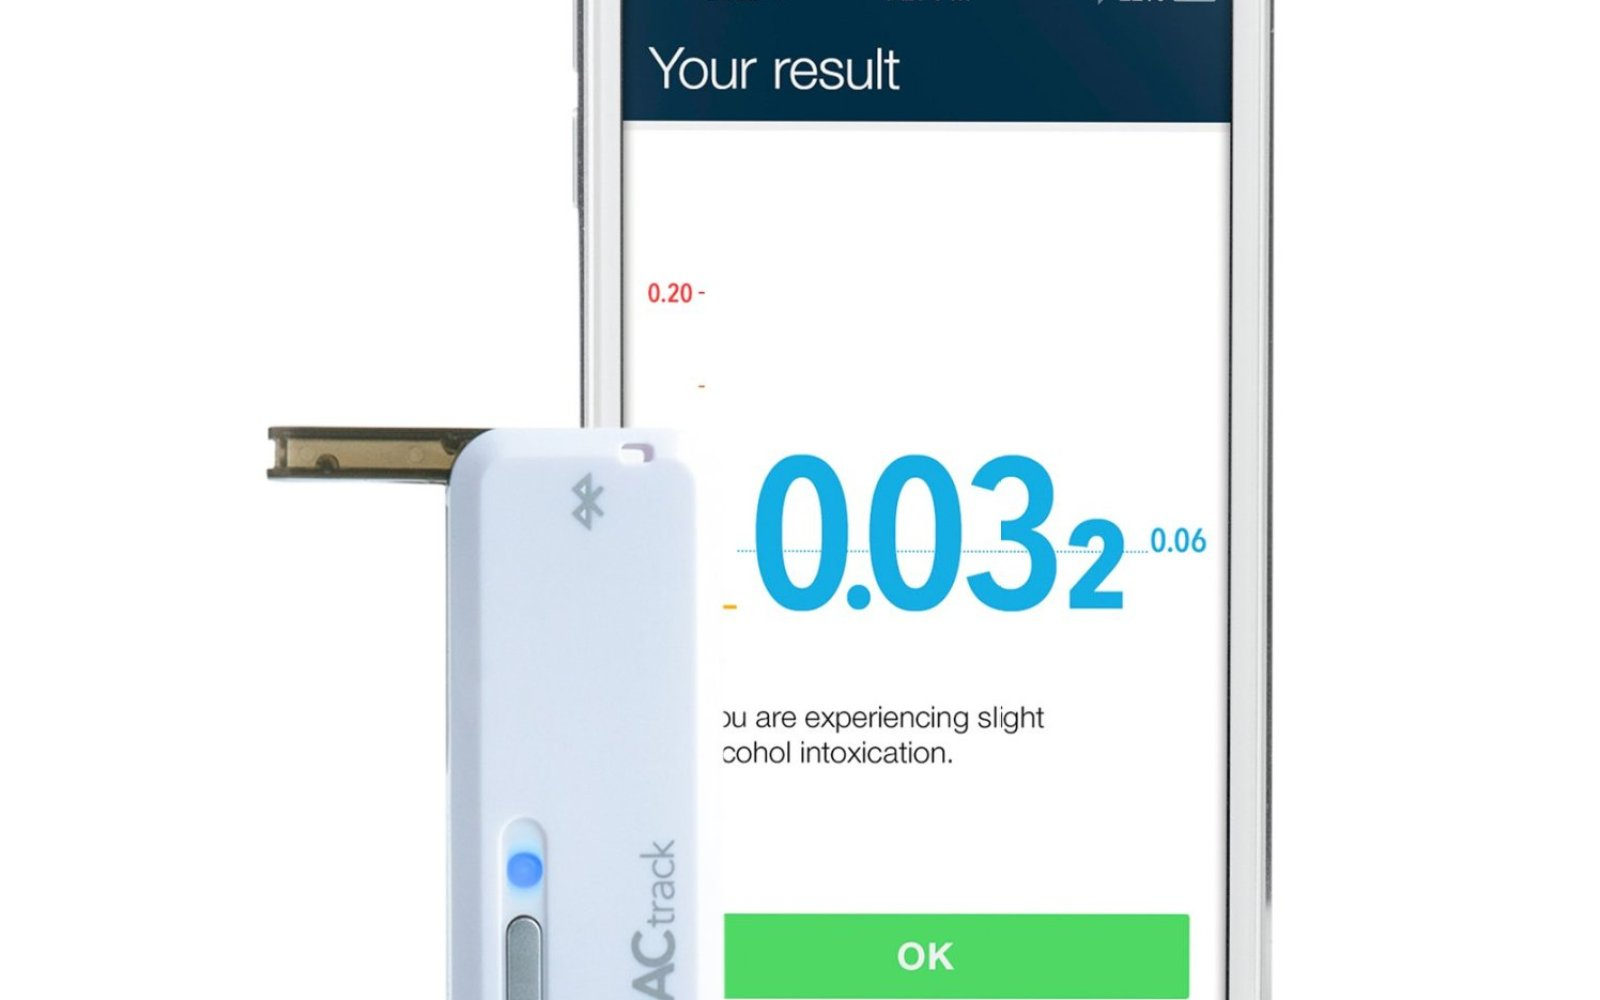 Apple's Health app can now track how drunk you are w/ updated BACtrack breathalyzers